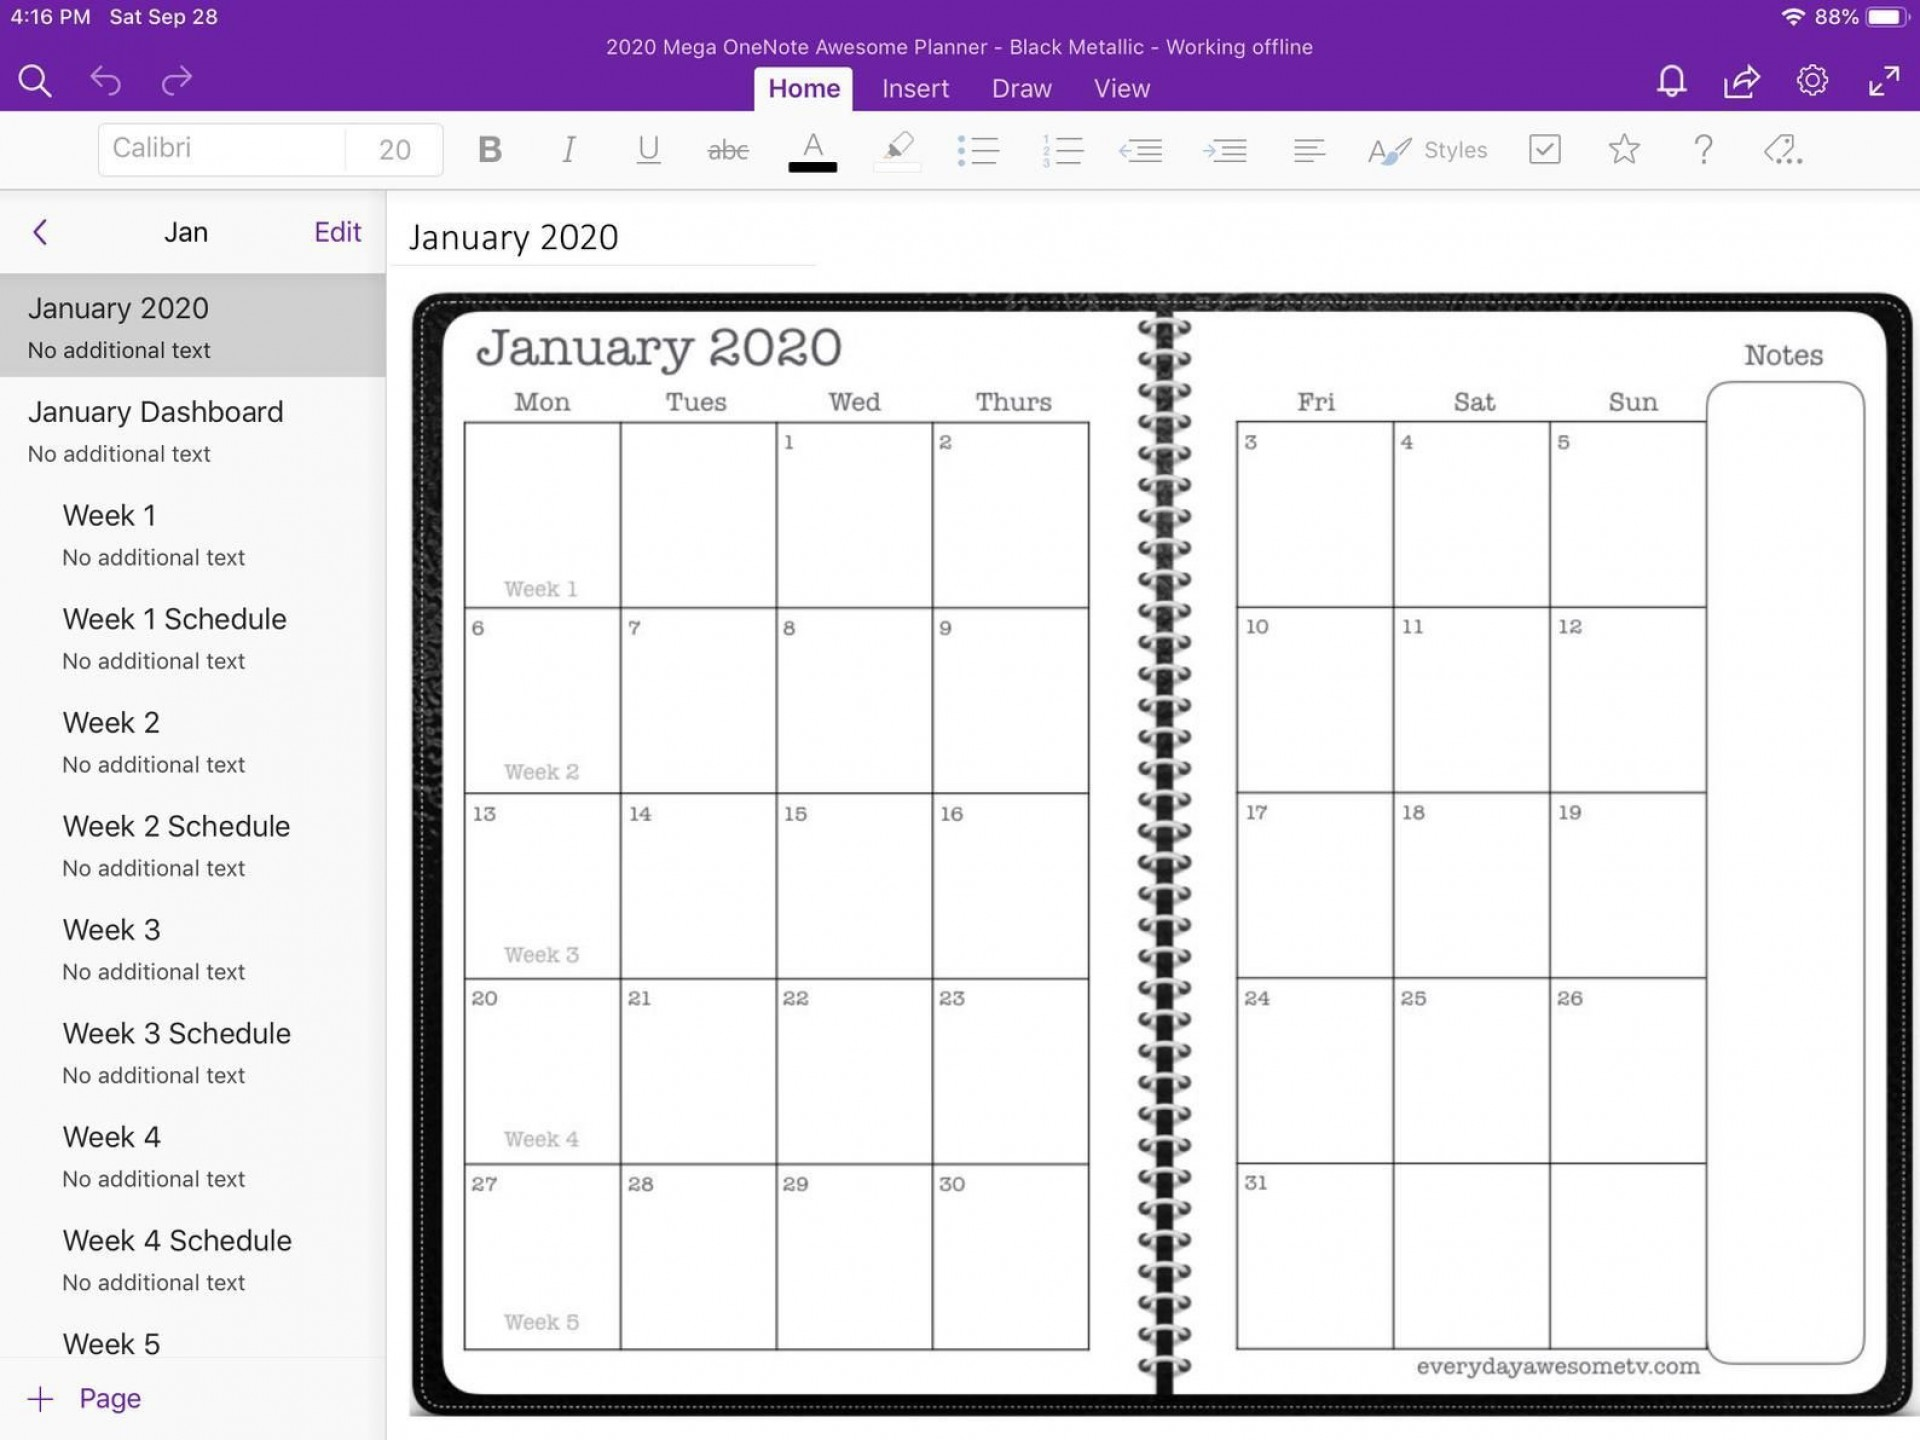 005 Exceptional Onenote Project Management Template Free Sample  Download1920